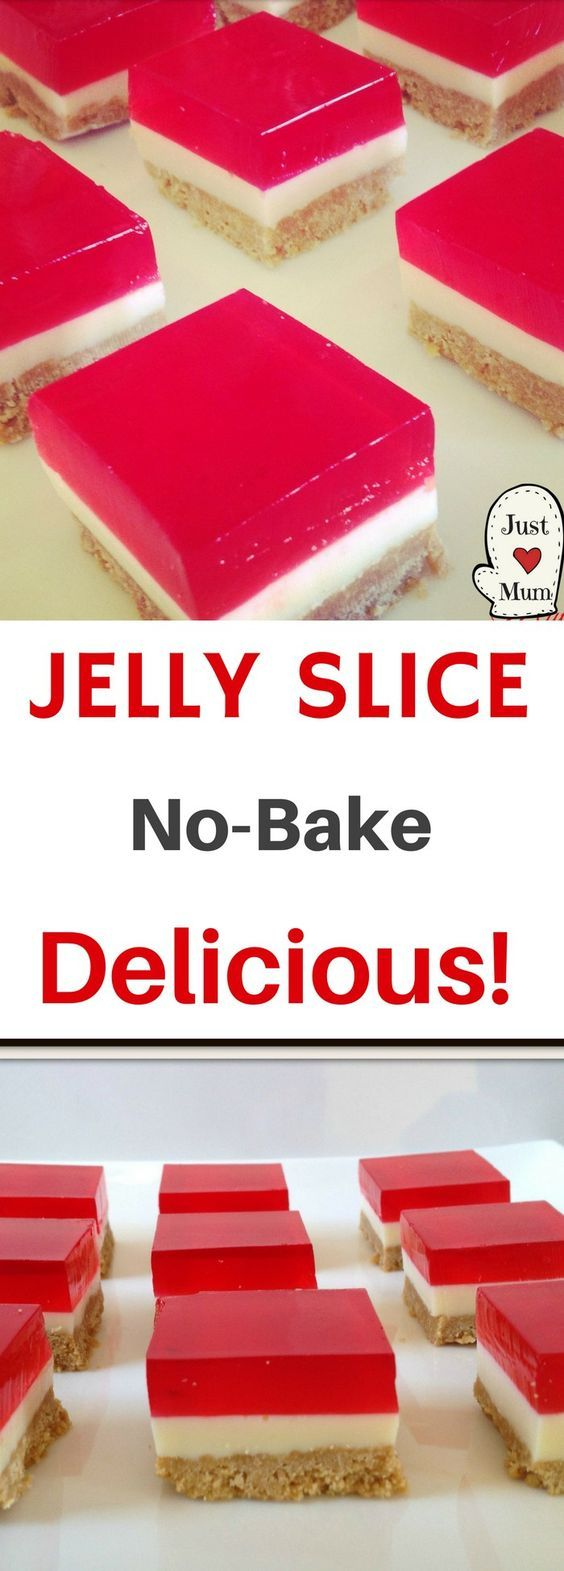 Just a Mum's No Bake Jelly Slice